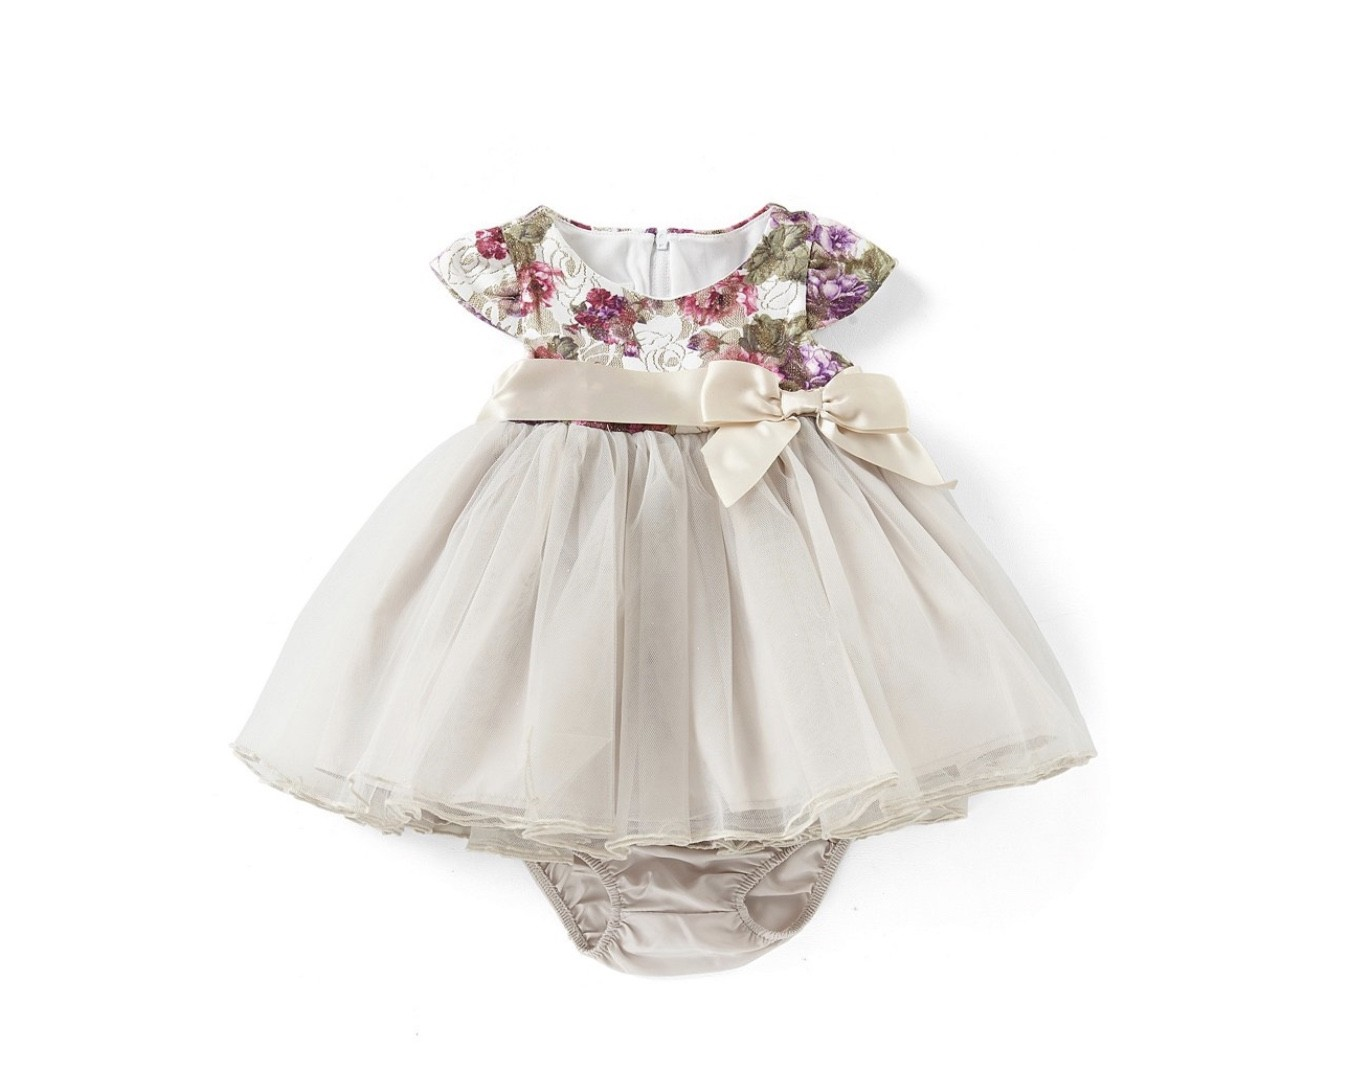 BONNIE JEAN FLORAL AND LACE DRESS SIZES 0 TO 24 MONTHS